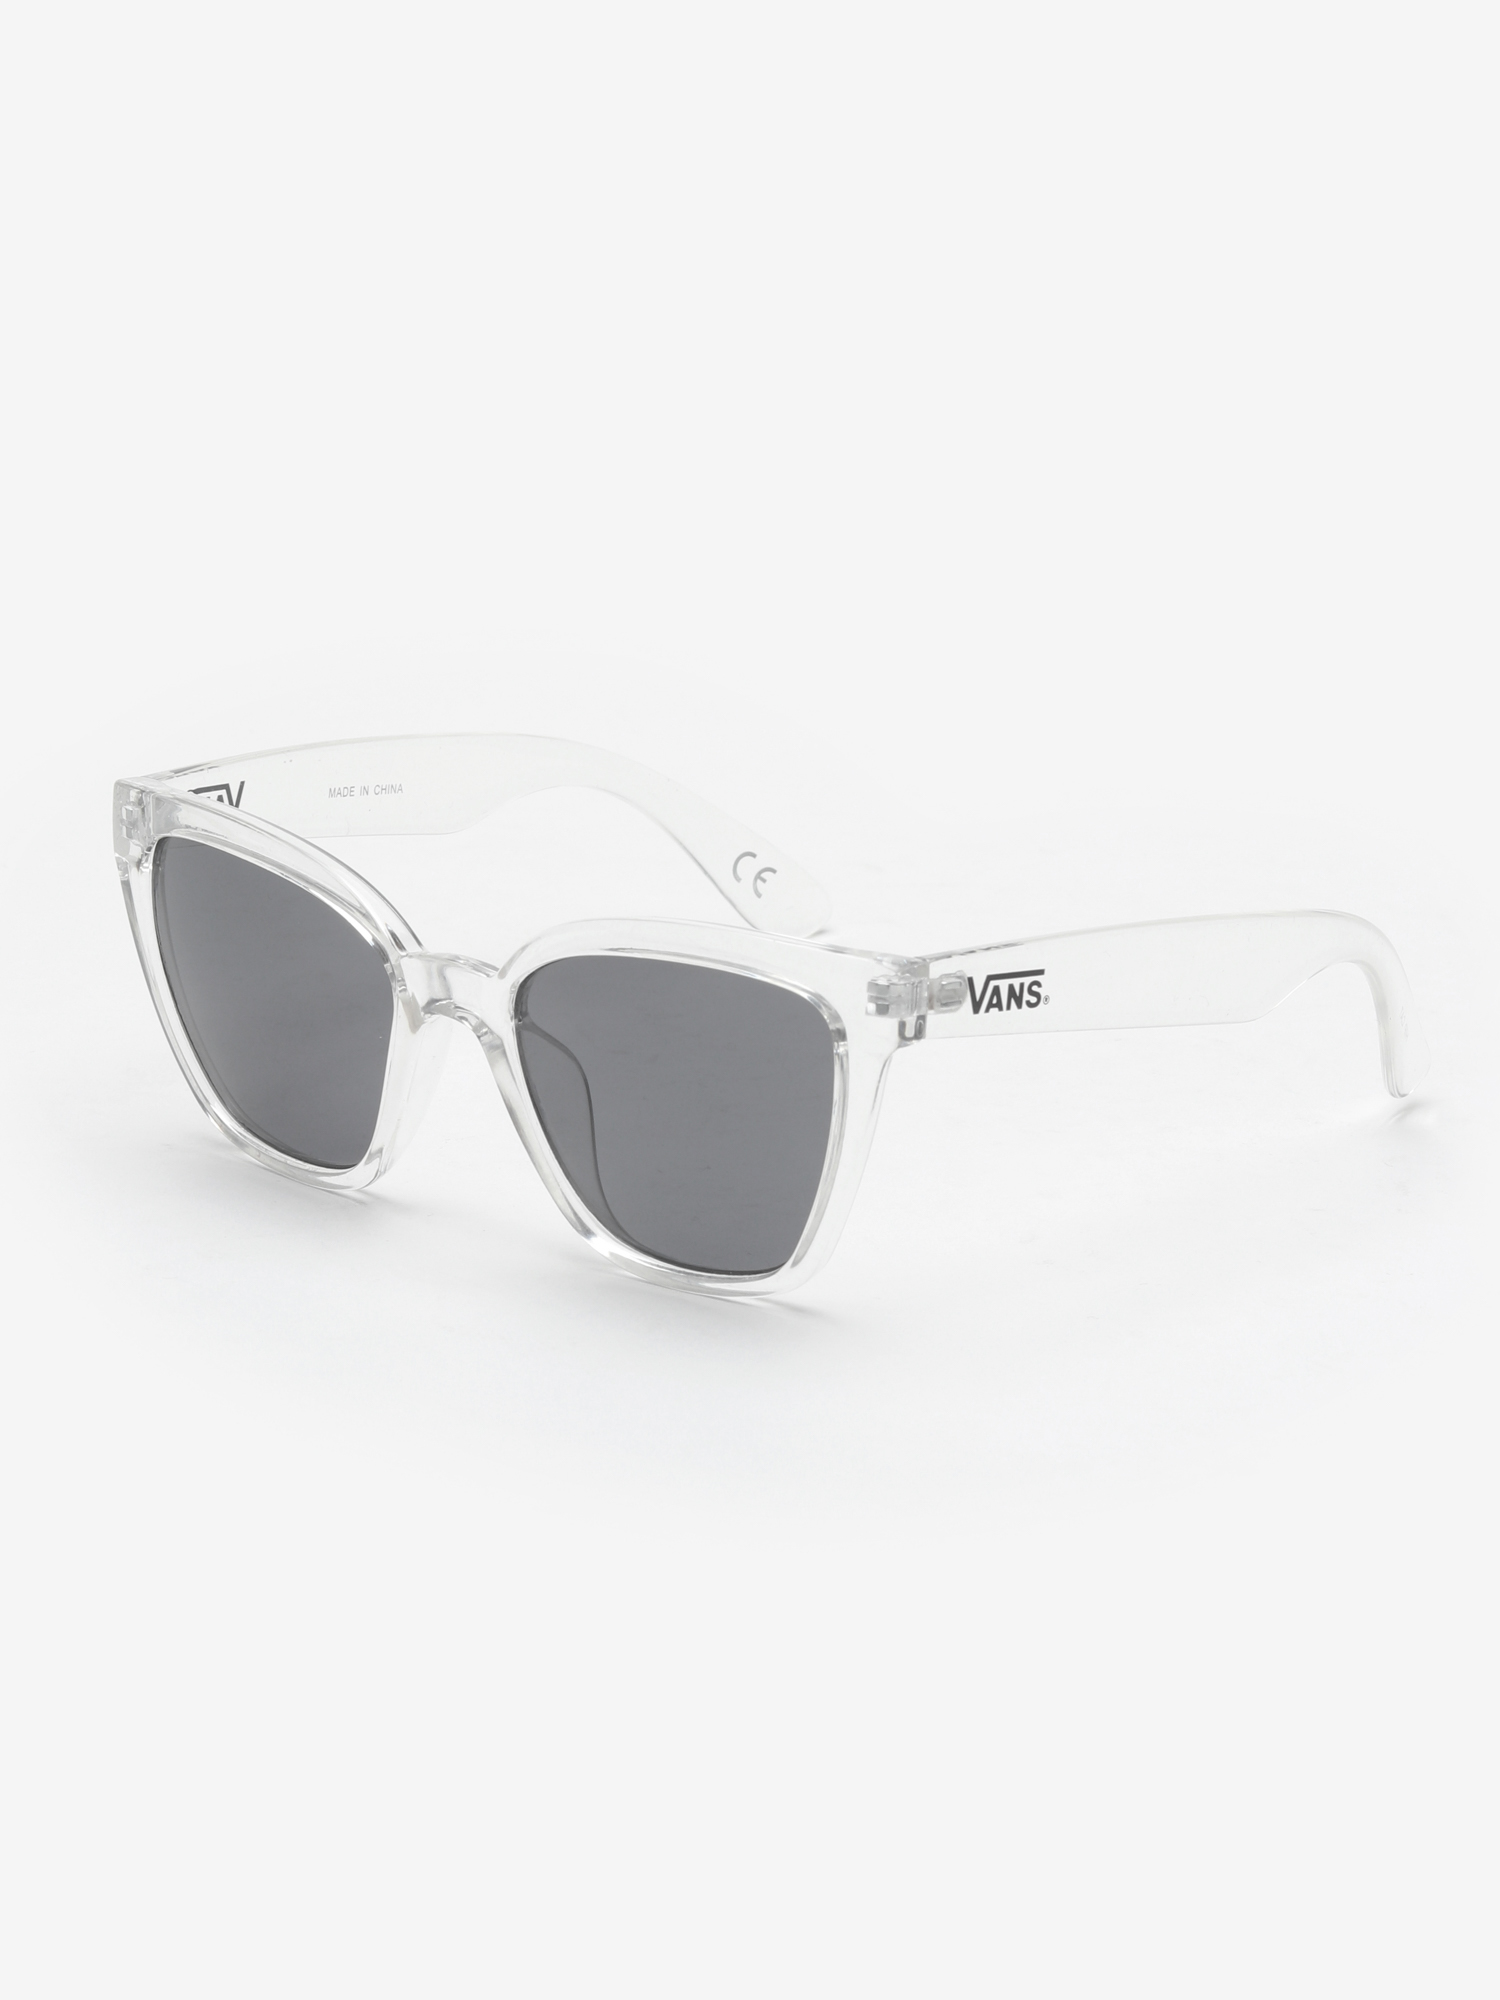 Brýle Vans Wm Hip Cat Sunglasse Clear Barevná